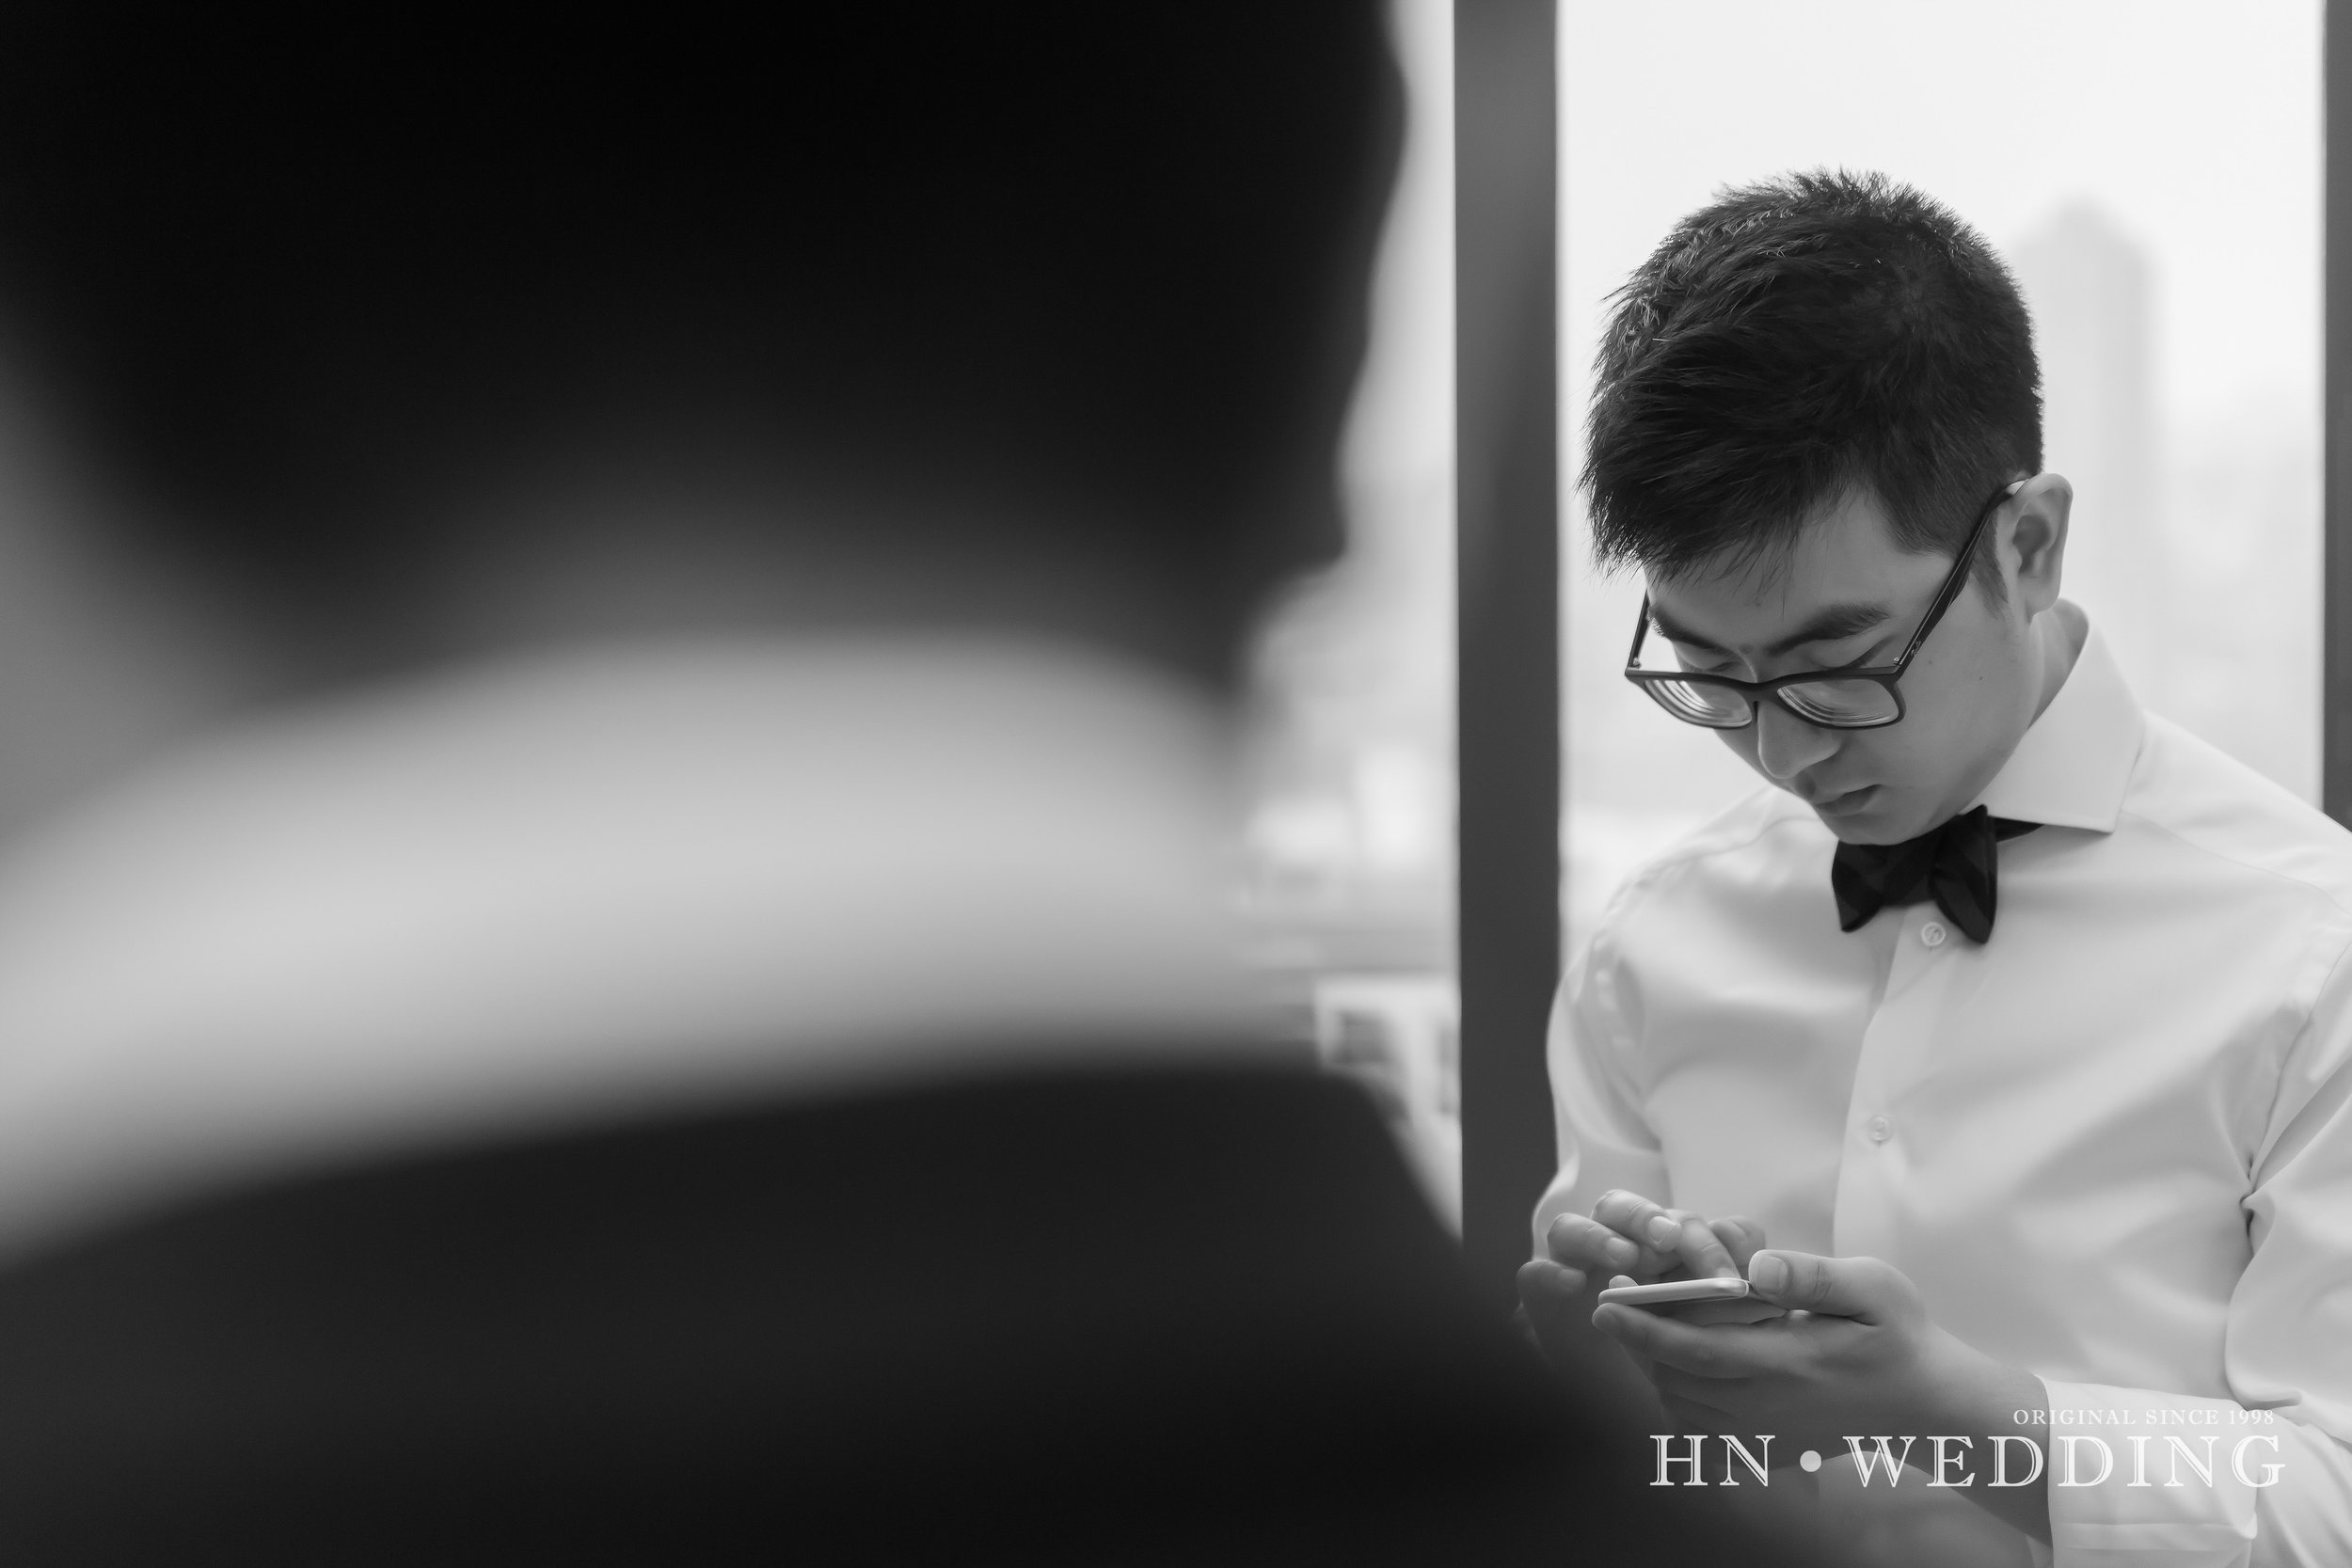 HNwedding-weddingday-20161029-5154.jpg